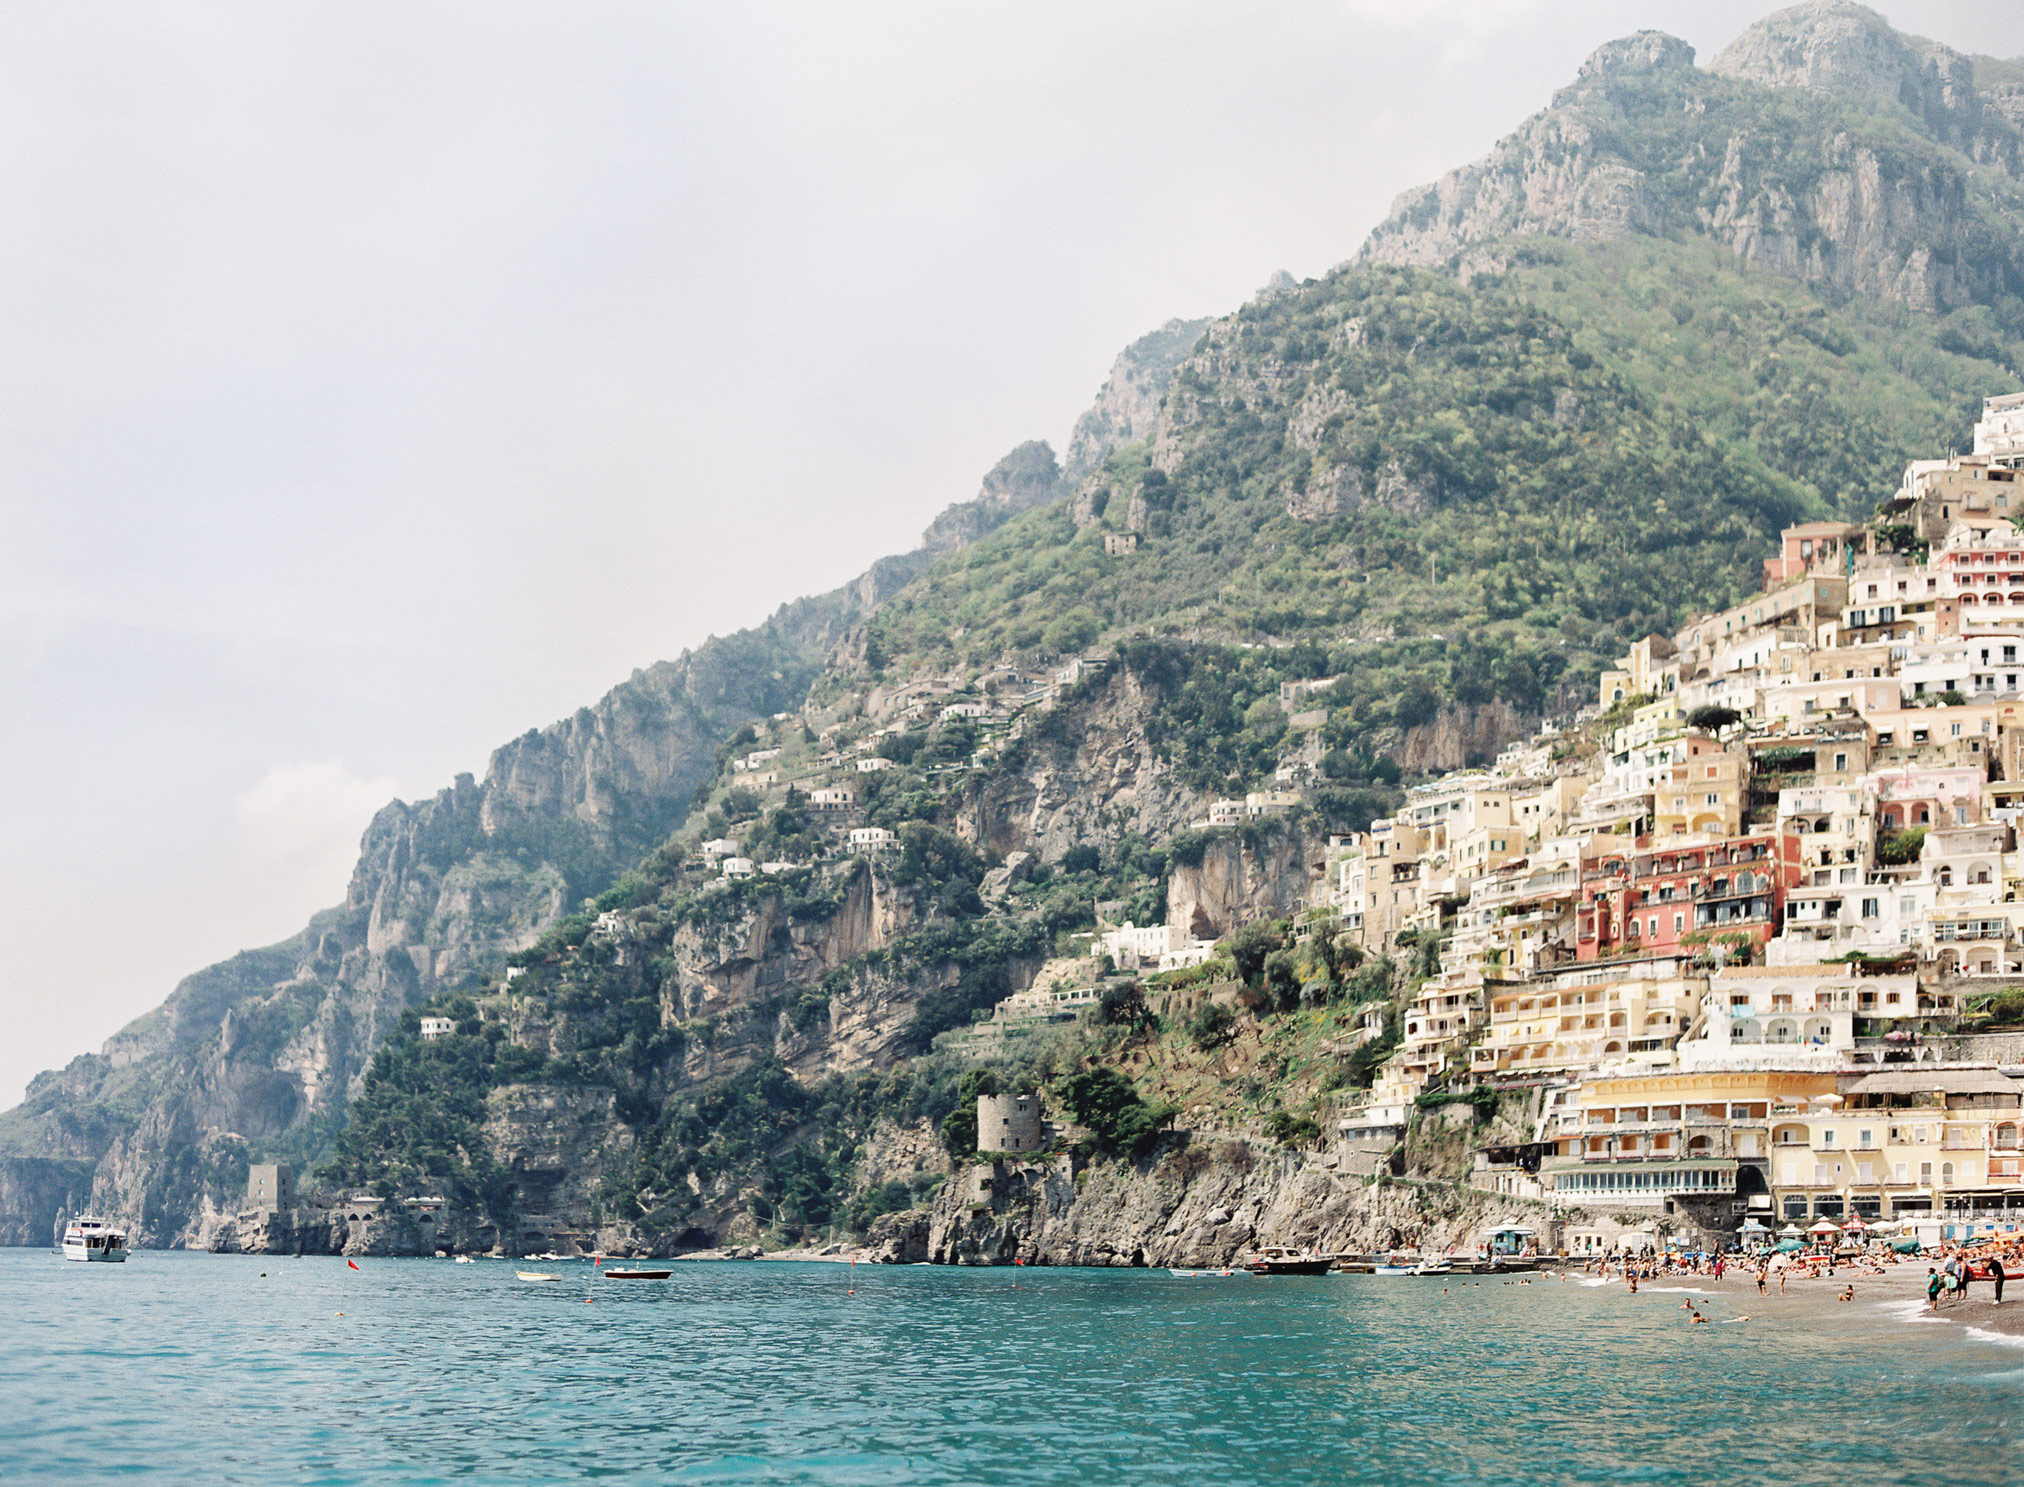 Amalfi Coast Travel Guide by Cultivated Wonder